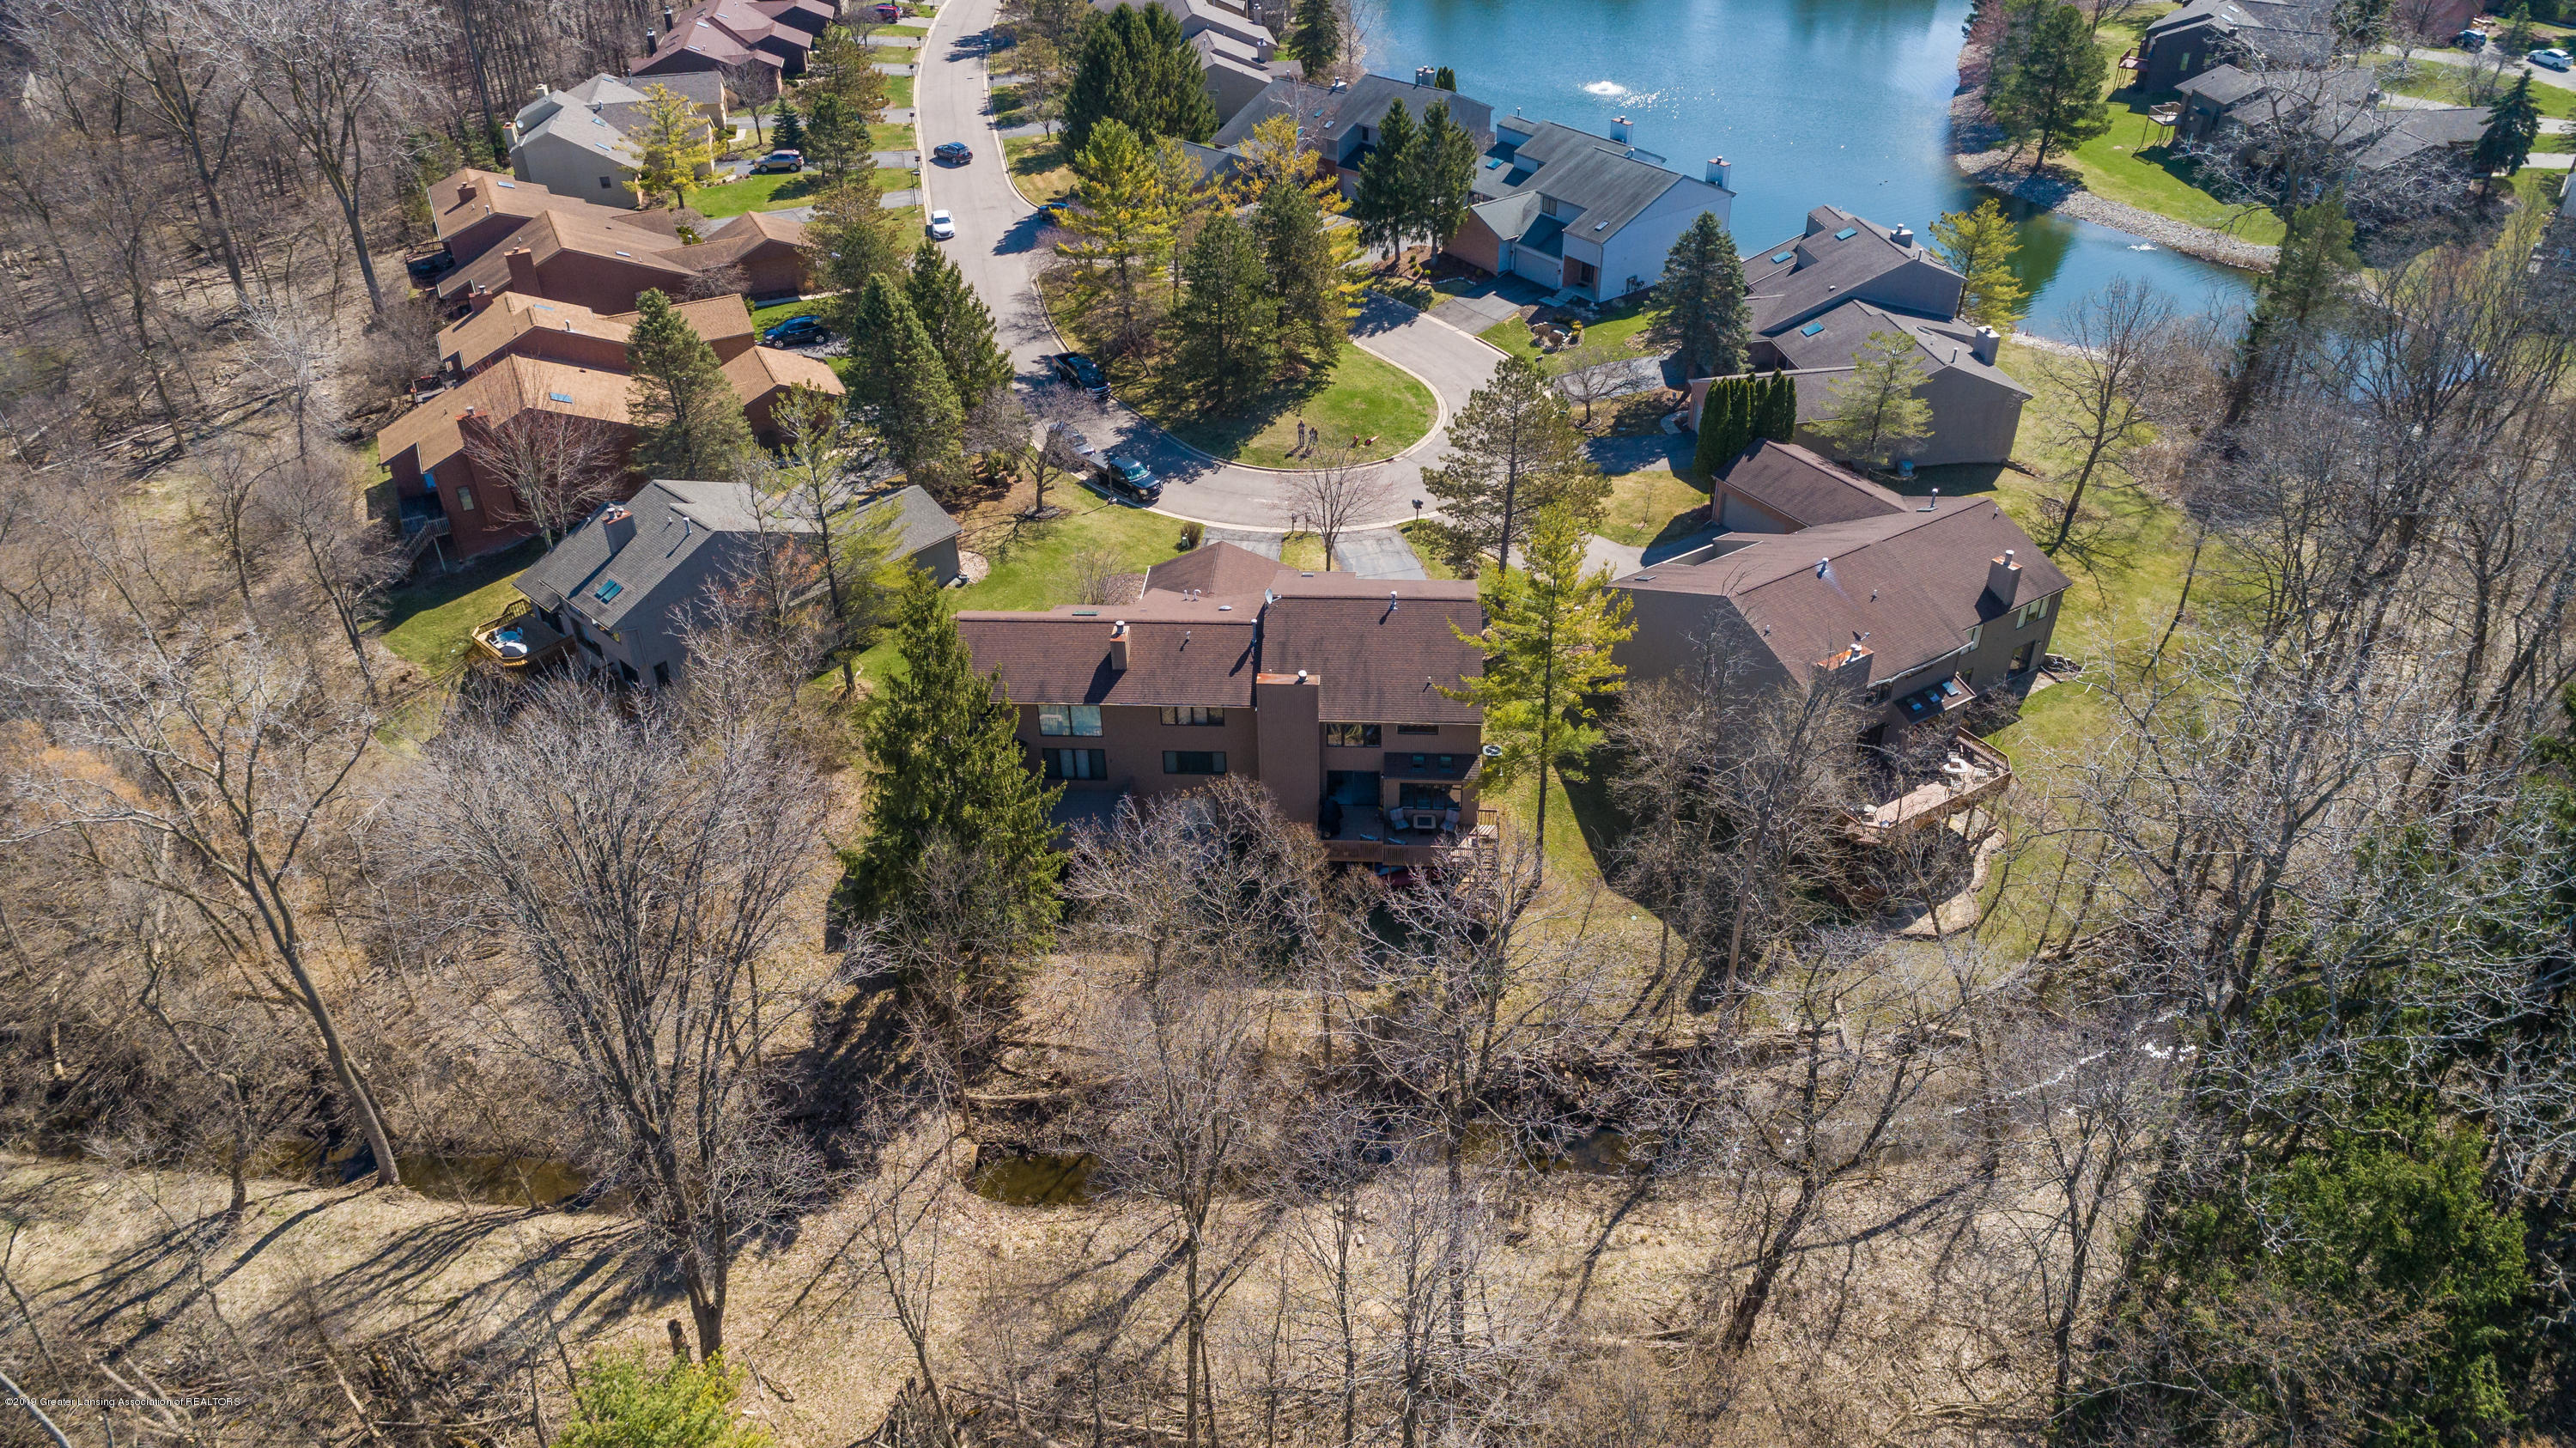 2474 Emerald Lake Dr - EMLL-0230 - 47